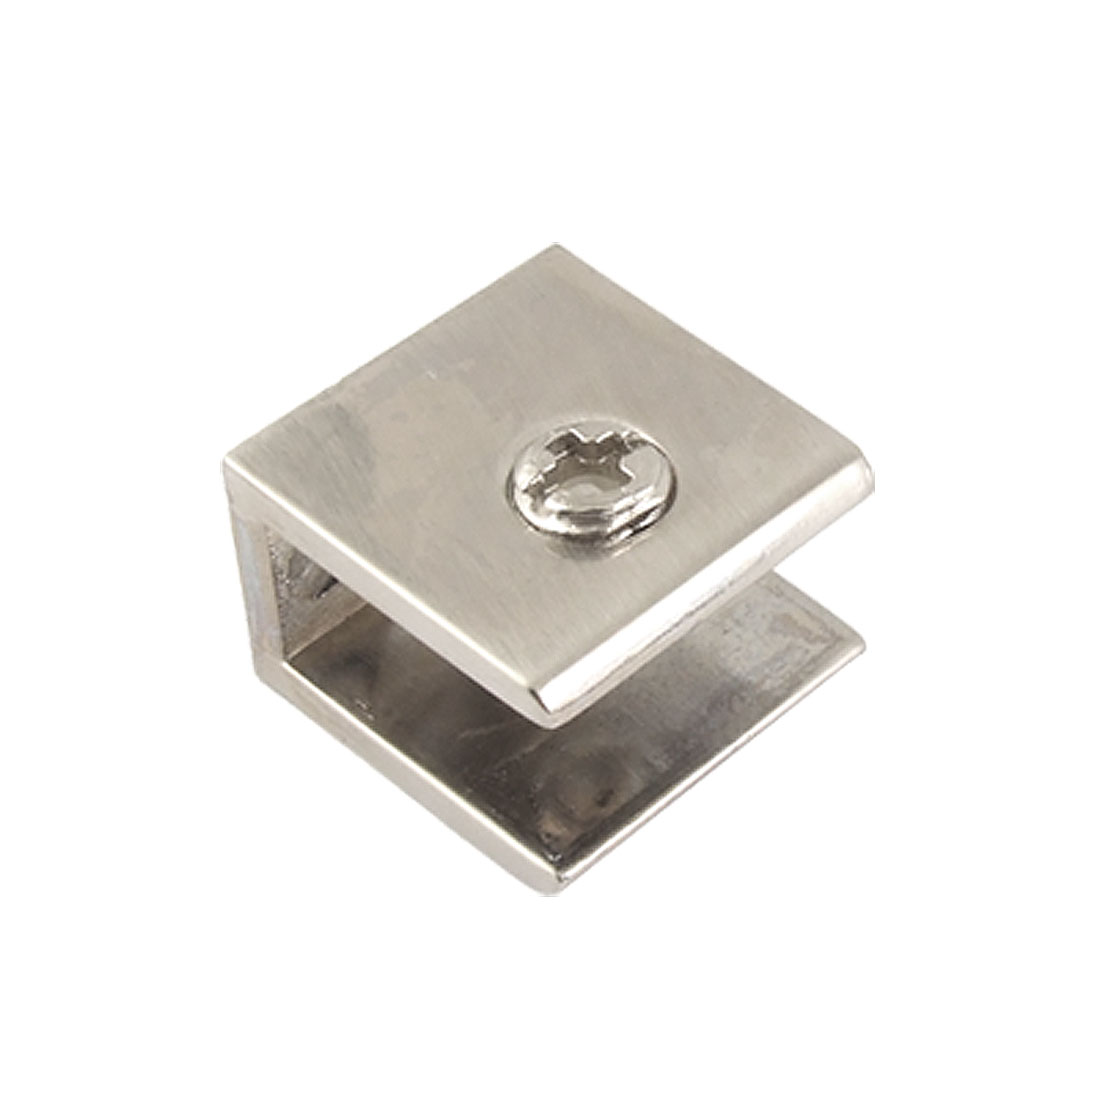 Adjustable Screw Squared 8-12mm Thick Glass Cabinet Clip Silver Tone